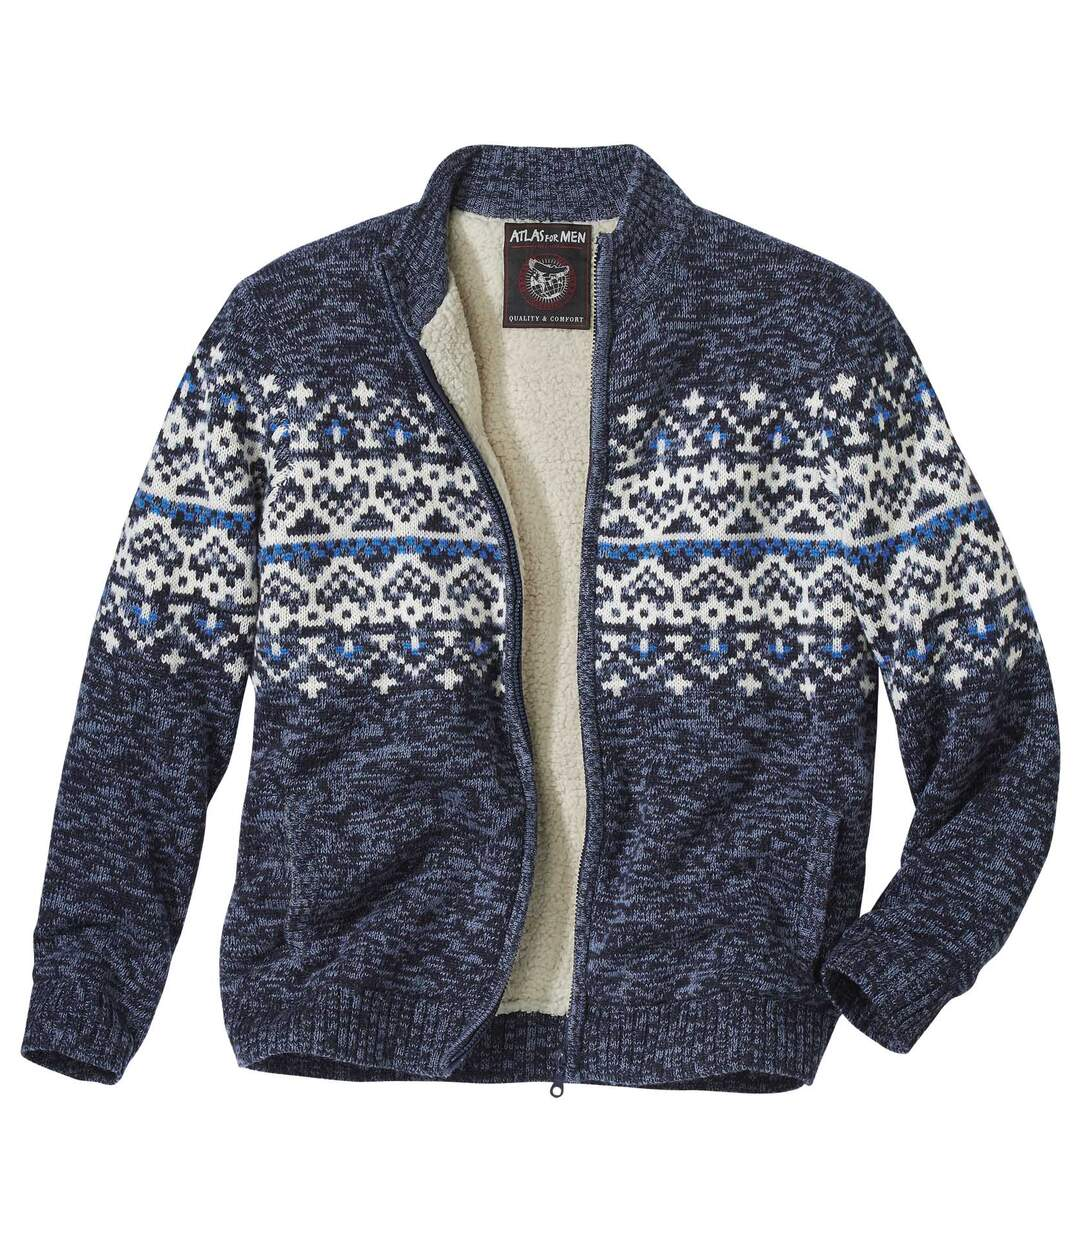 Men's Blue Full Zip Knitted Jacket with Sherpa Lining